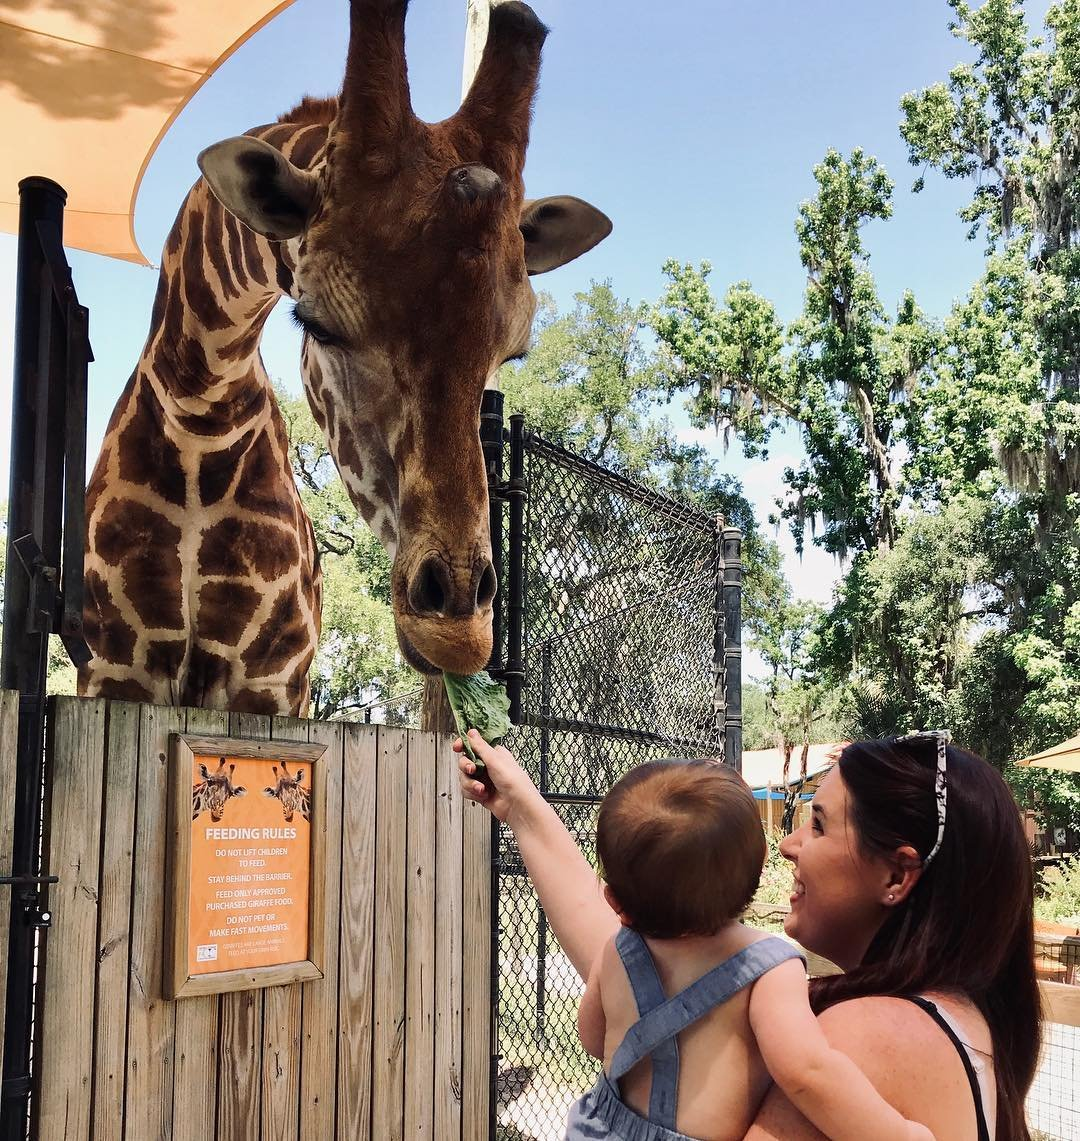 A mother holds her baby as they both feed a giraffe